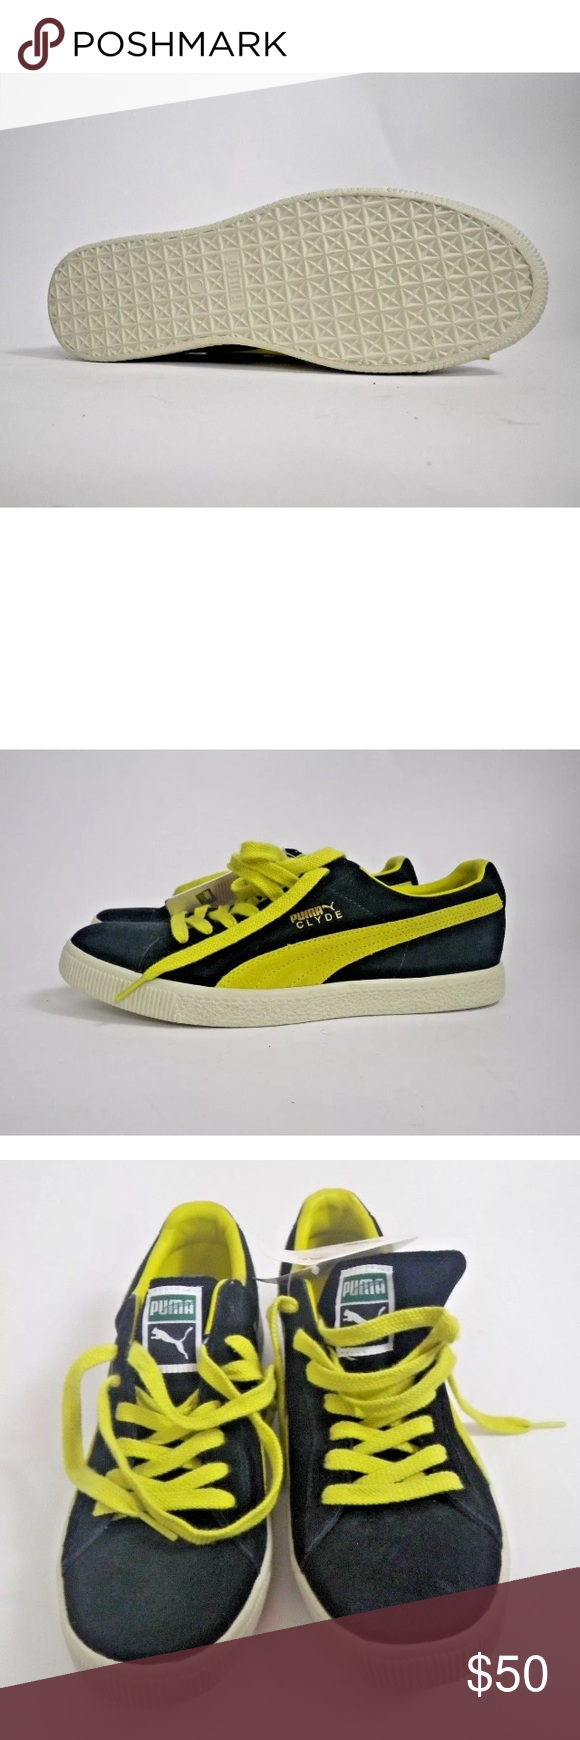 new concept e1814 78638 Vintage Puma Clyde Black and Yellow Suede Size 12 This ...